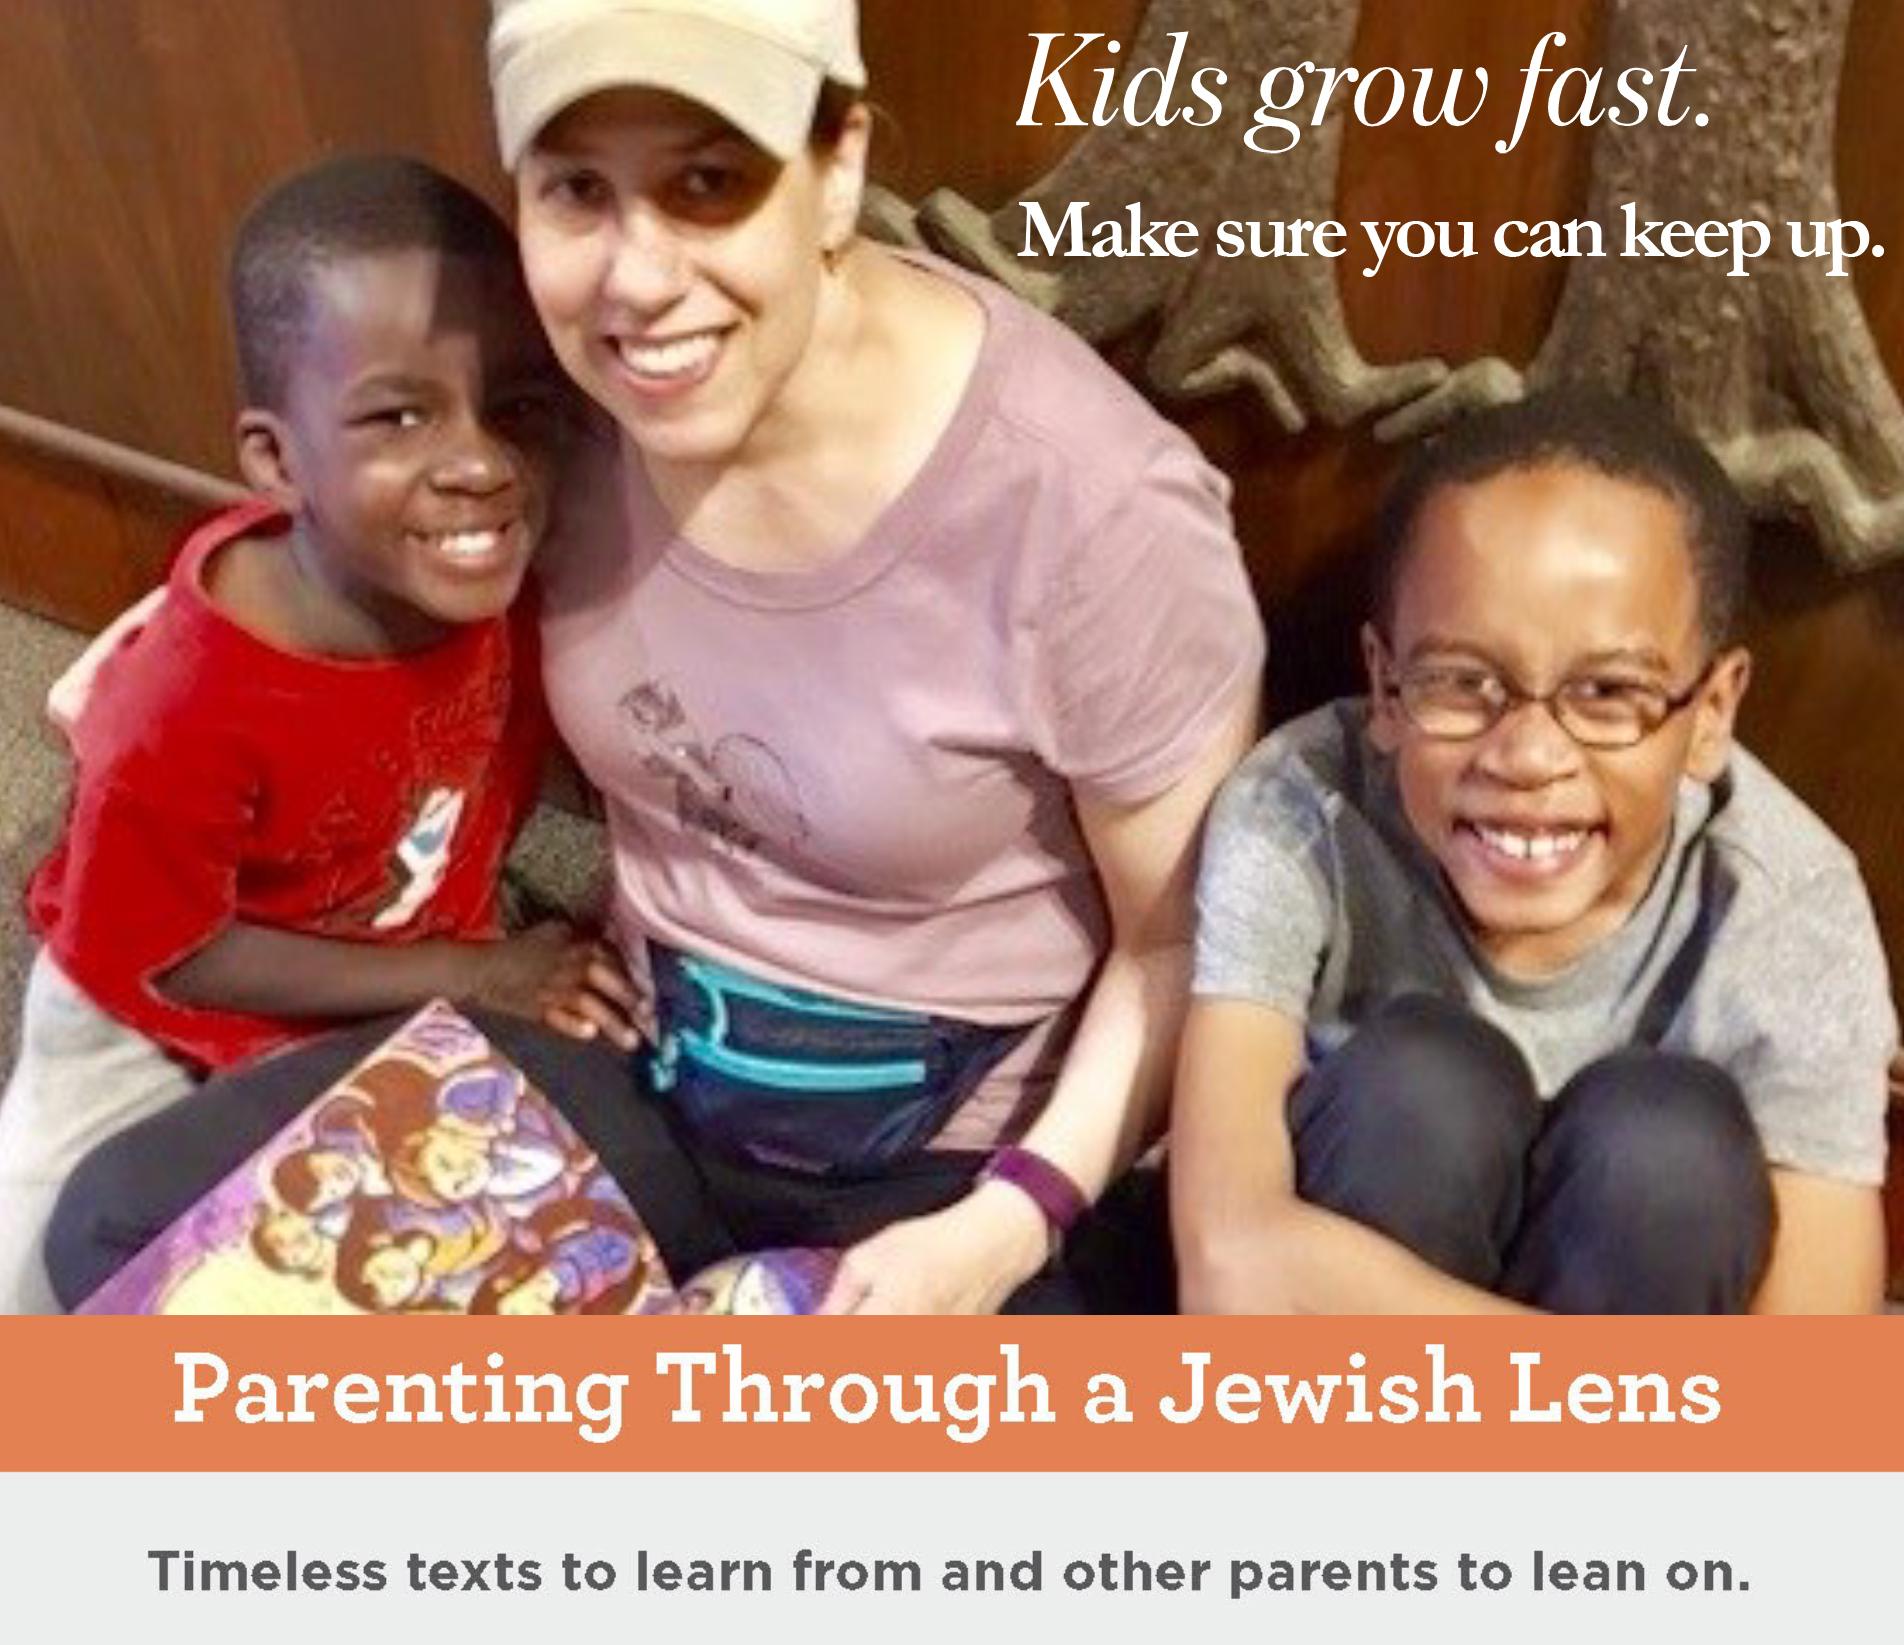 HBT_ParentingThroughAJewishLens_Flyer_2018_cropped.jpg